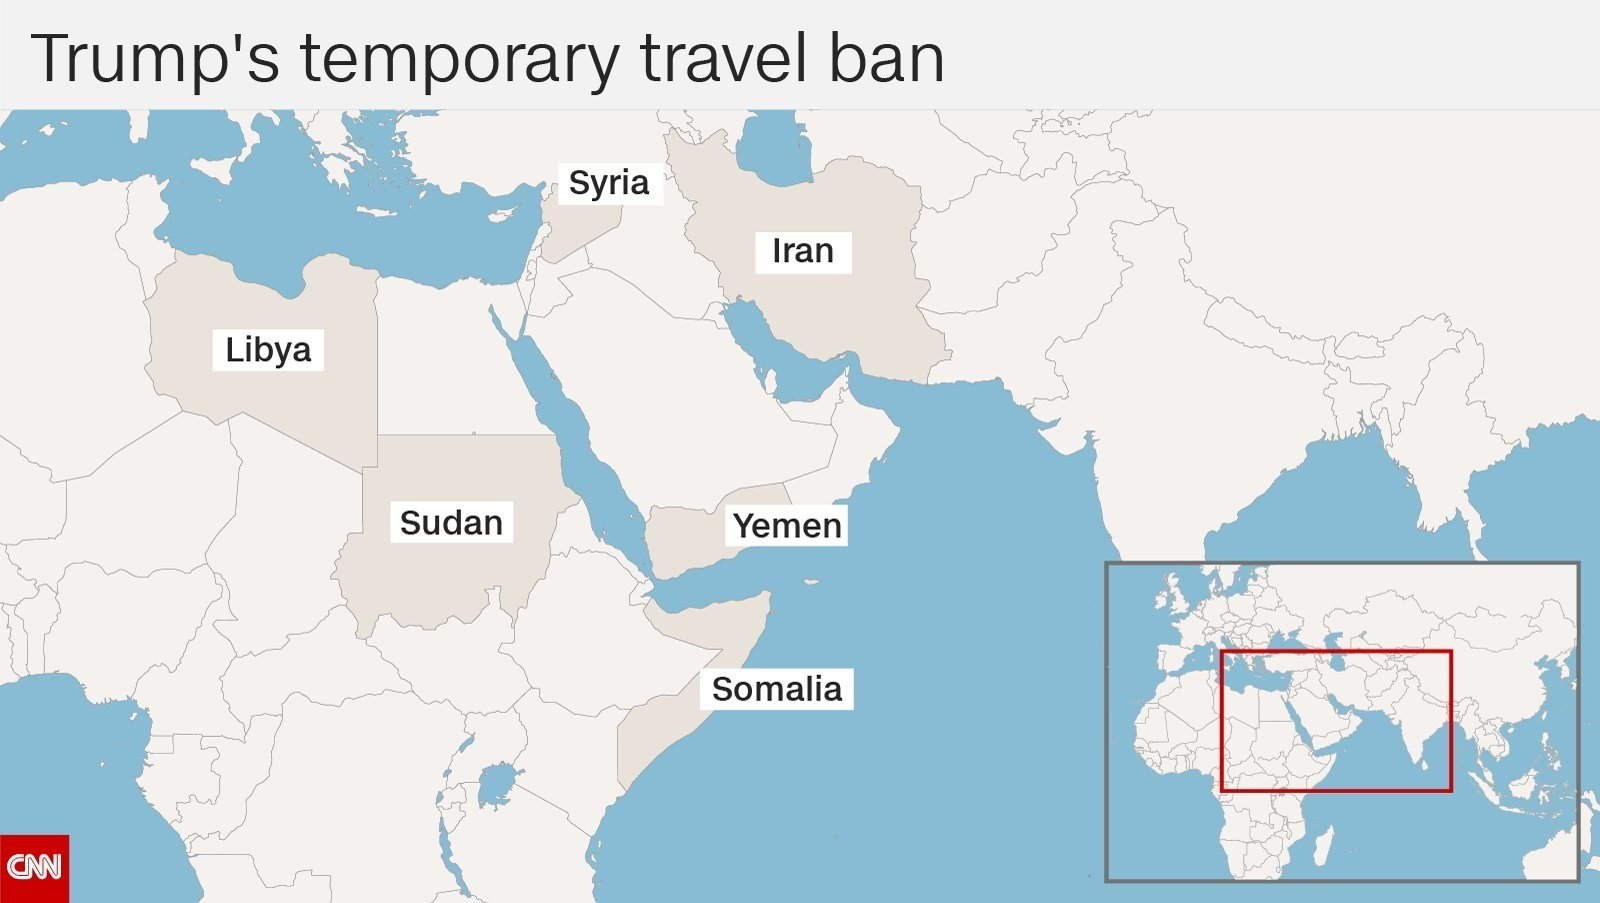 (Source: CNN) A map depicts the countries that are part of President Donald Trump's travel ban.